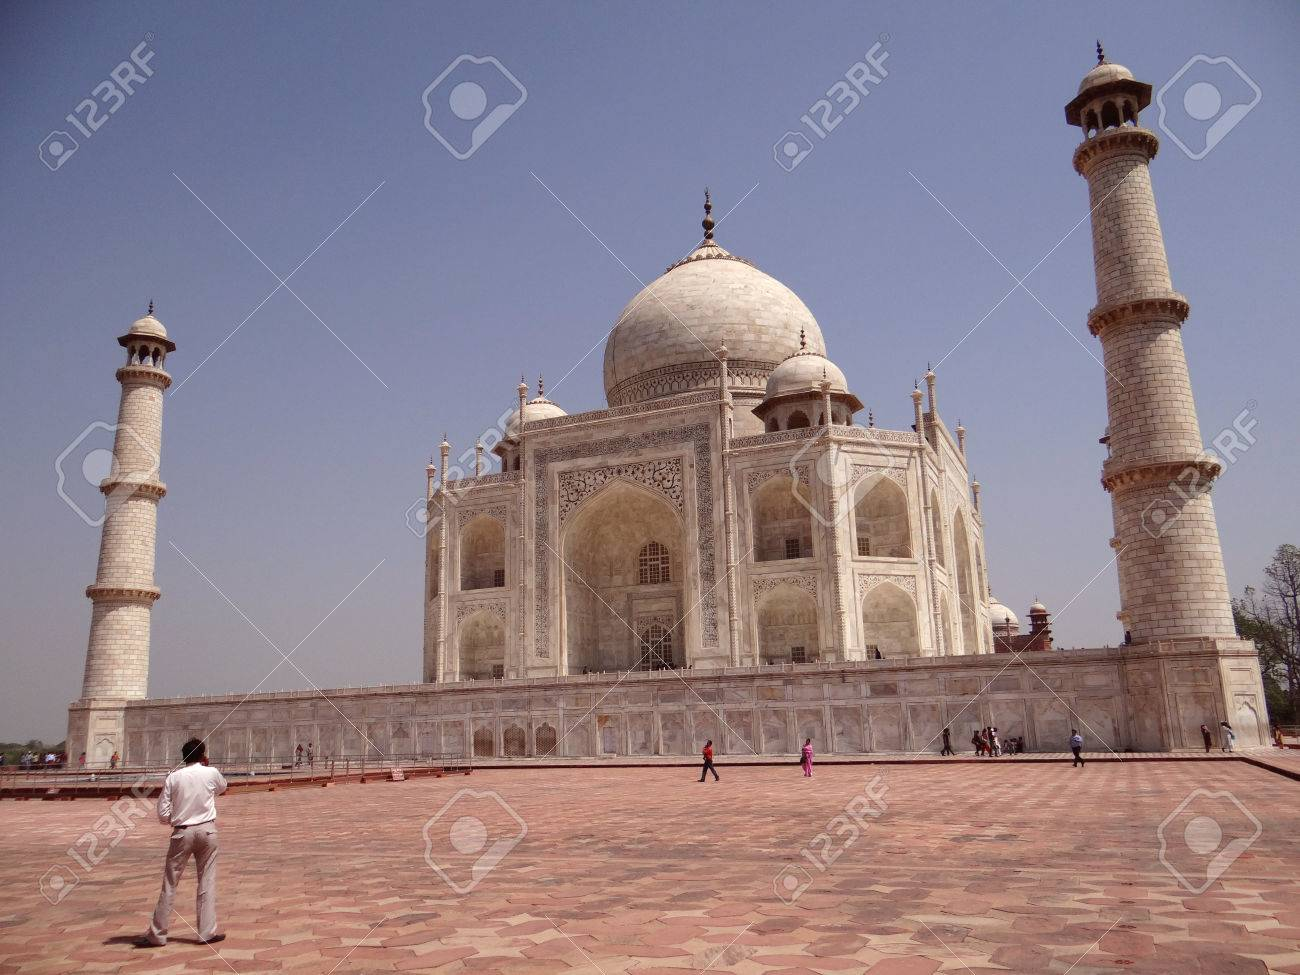 World Famous Symbol Of Love The Taj Mahal Is A White Marble Stock